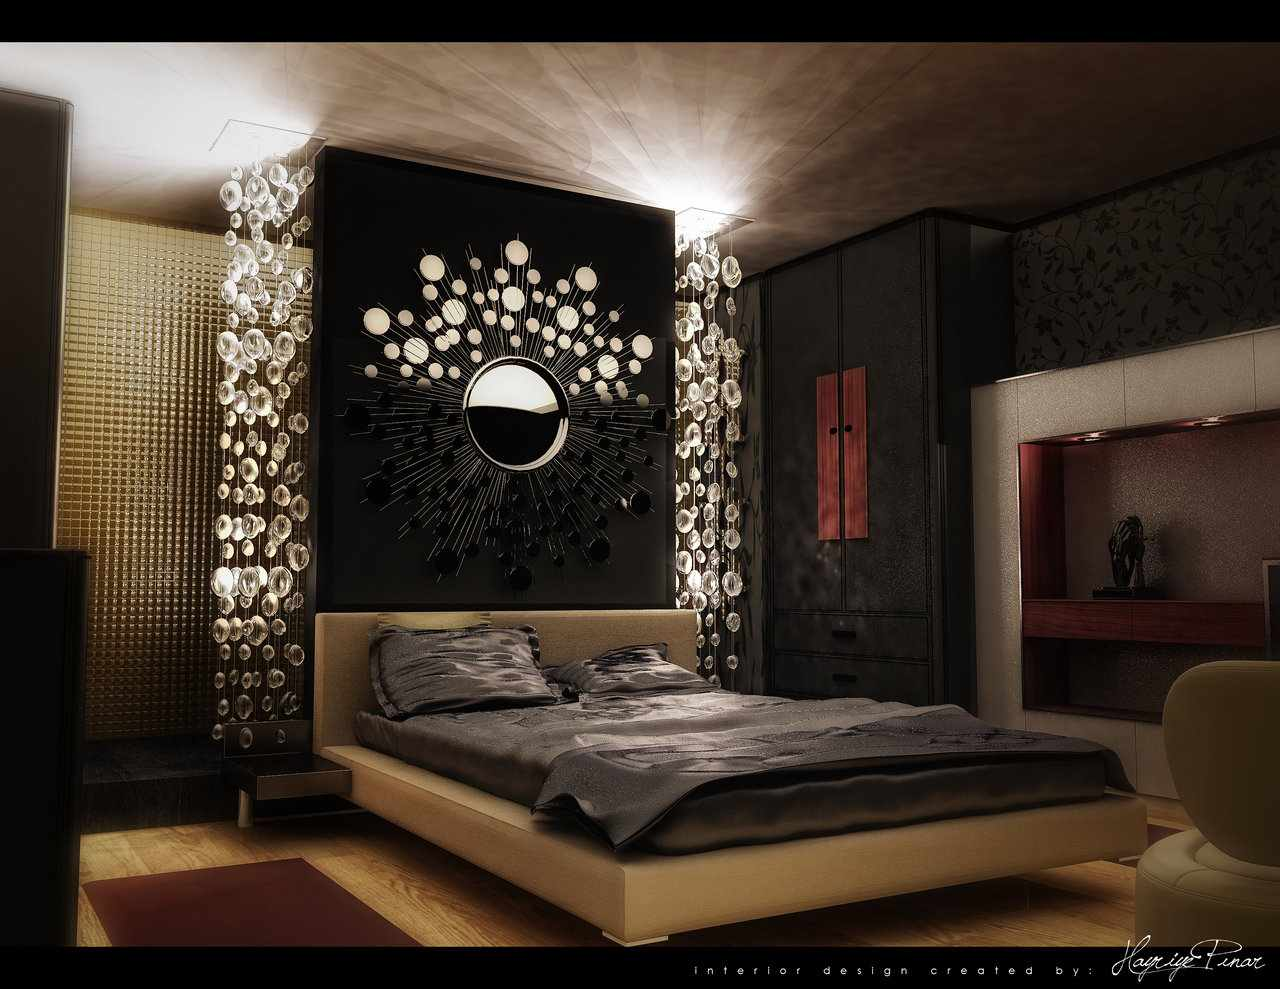 Ikea bedroom ideas ikea bedroom 2014 ideas room design for Apartment bedroom design ideas